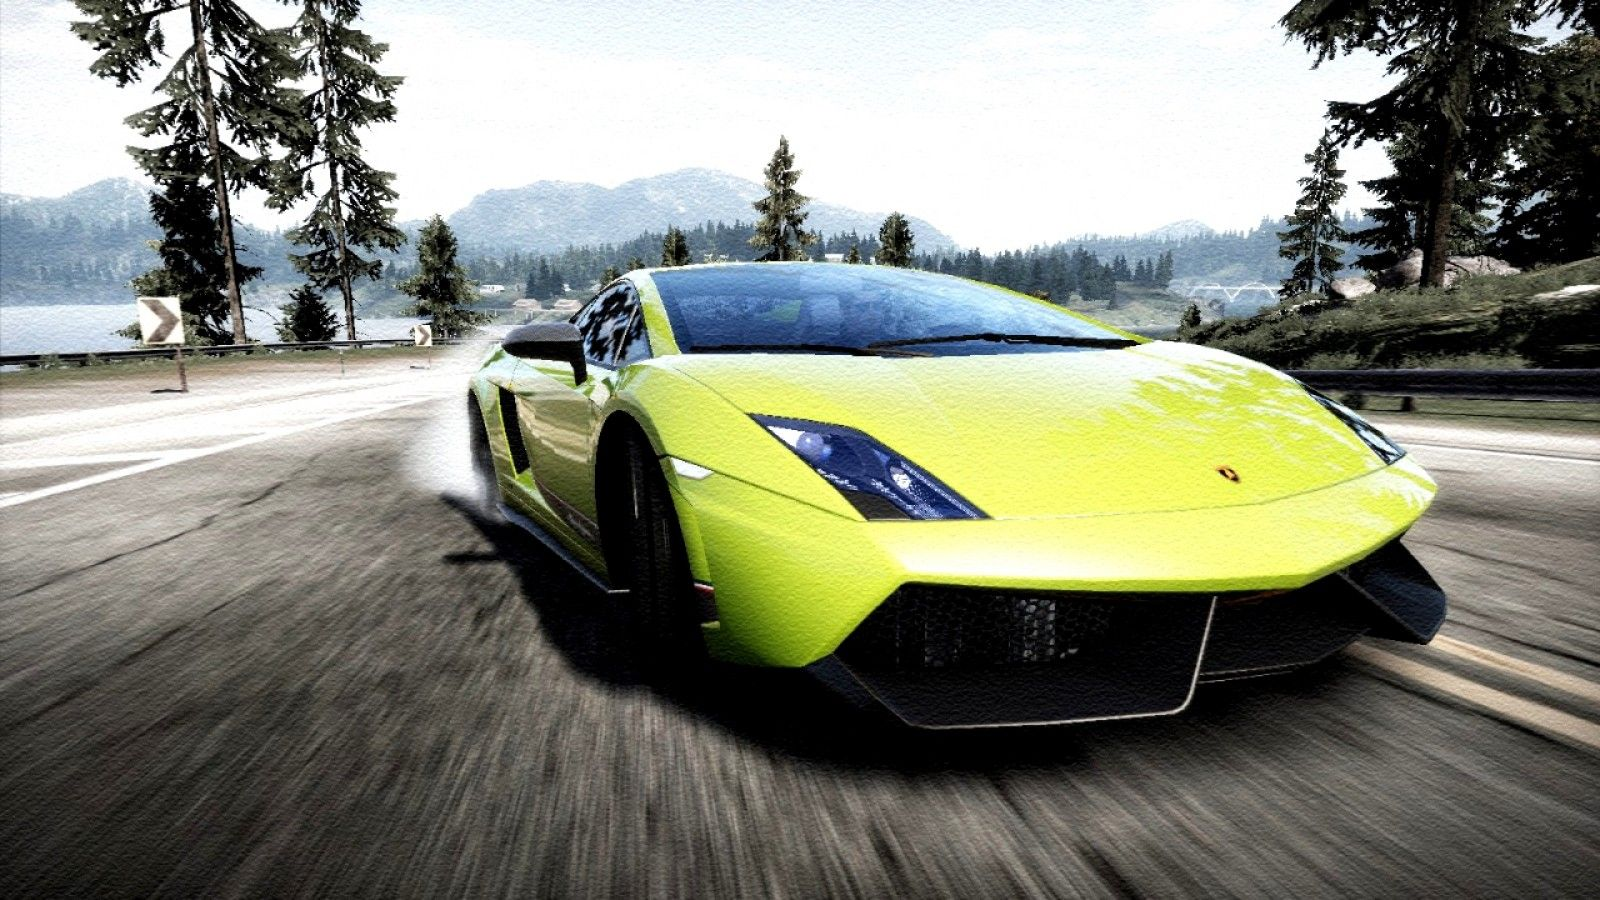 RENM Lamborghini Gallardo STS Wallpaper HD Car Wallpapers